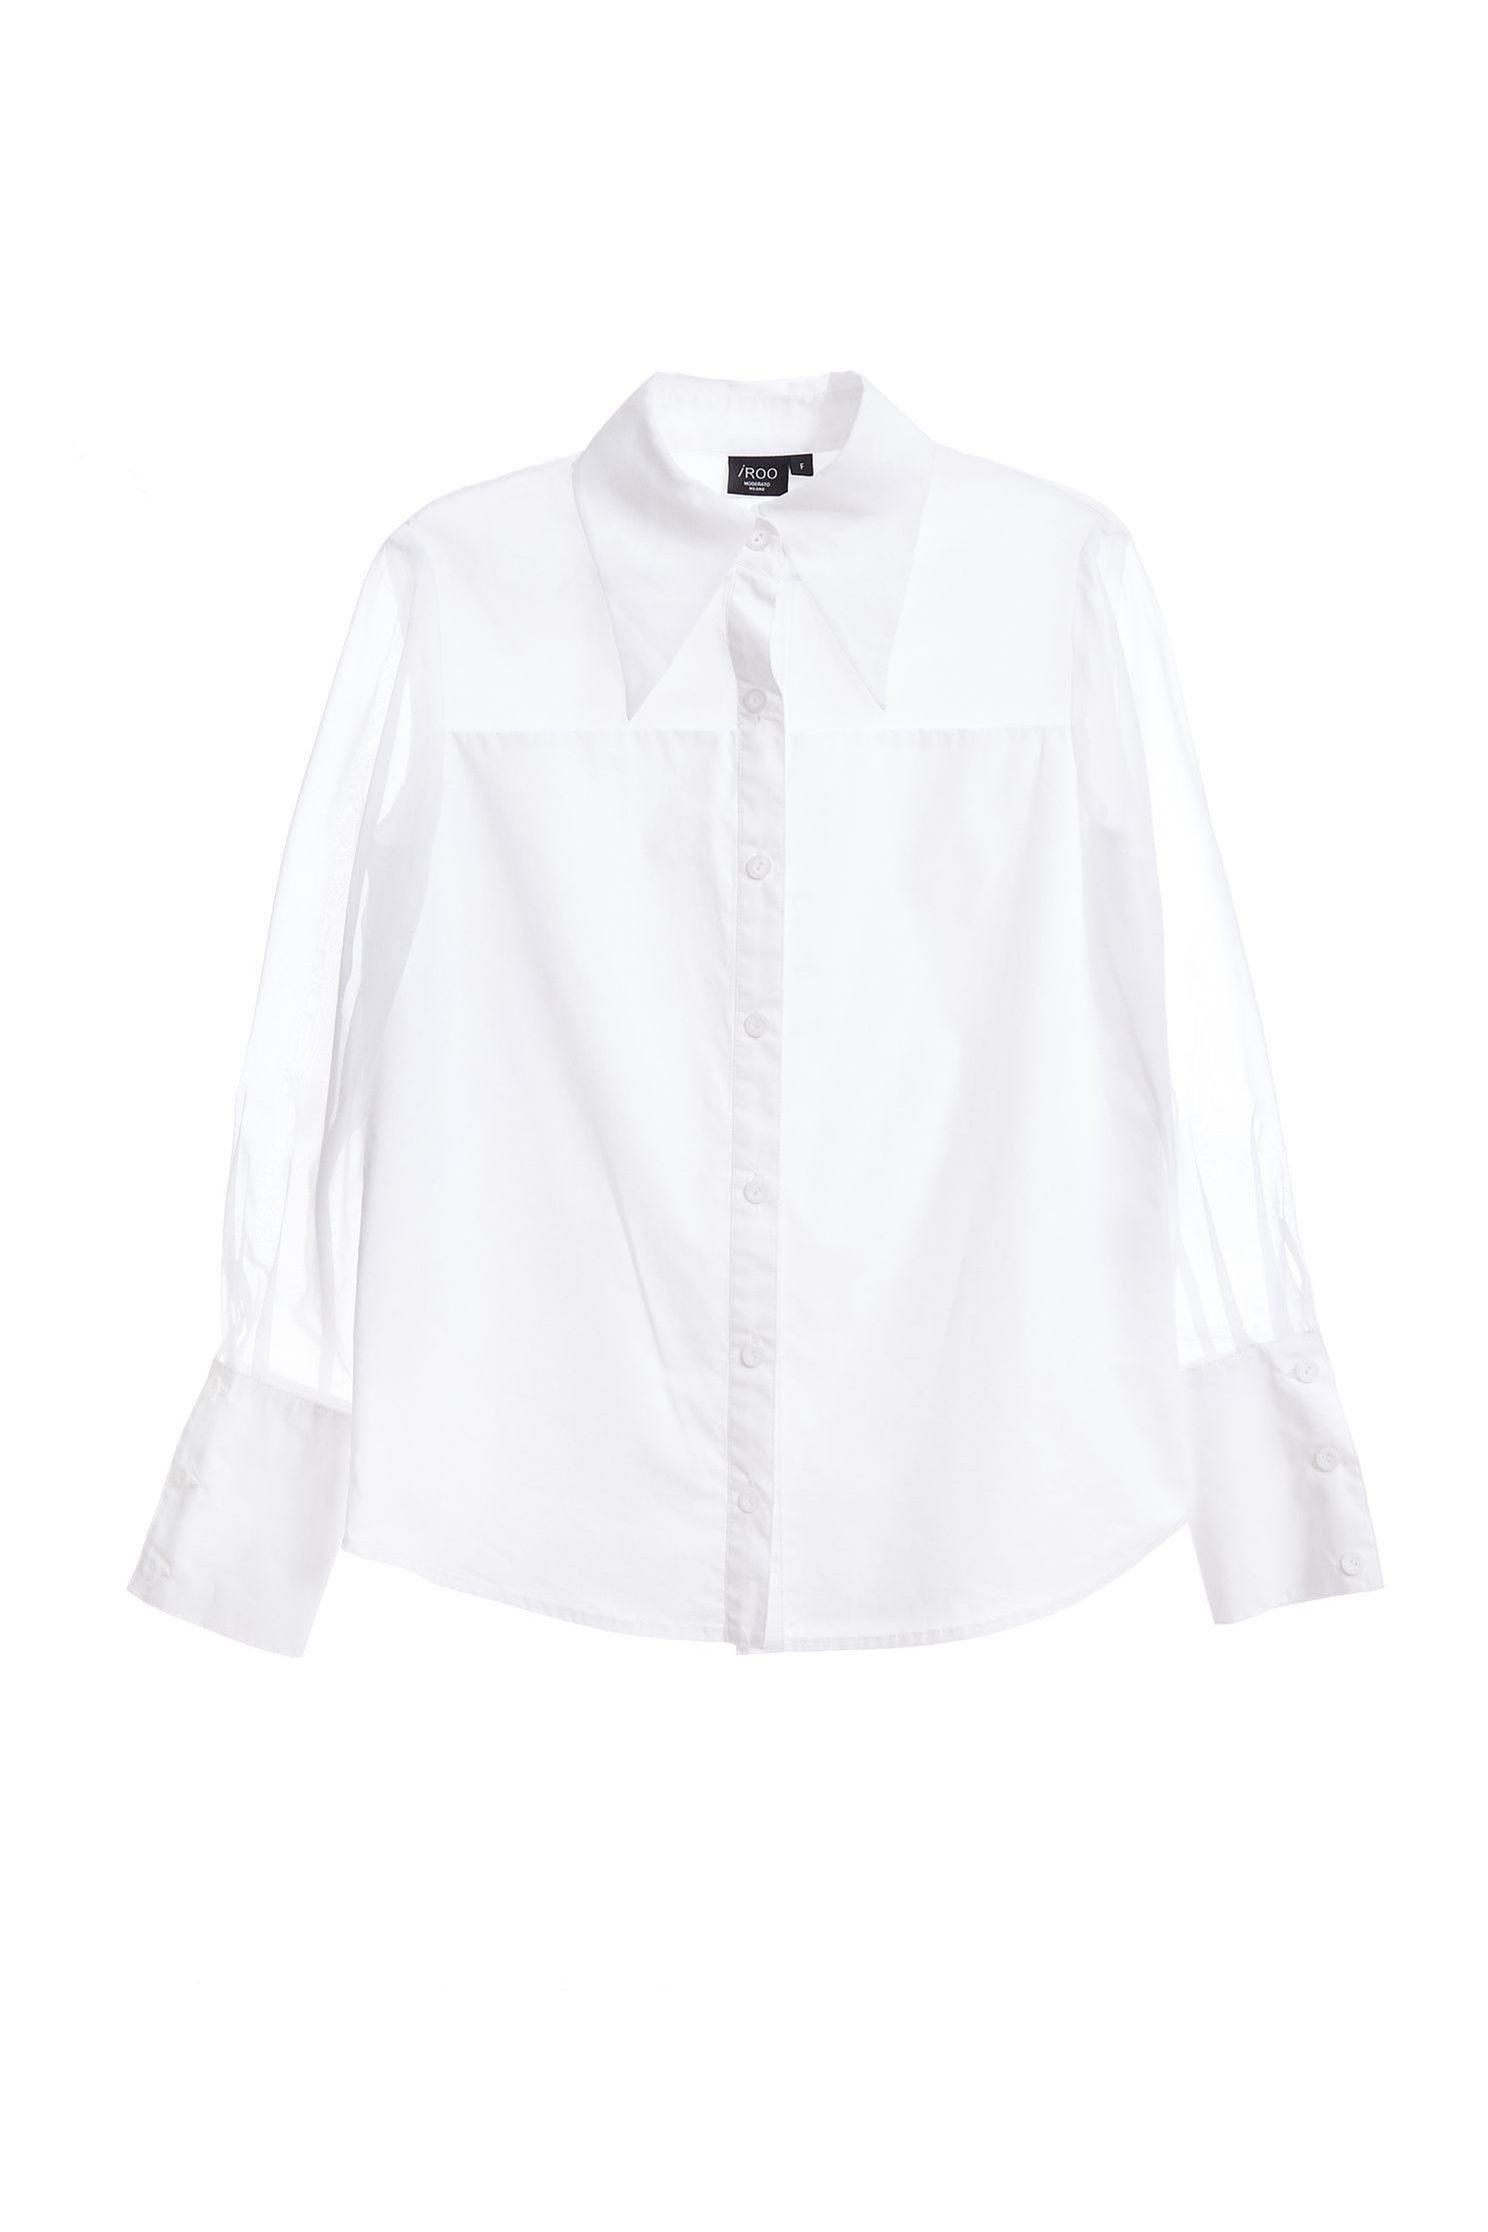 Organza mixed shirt